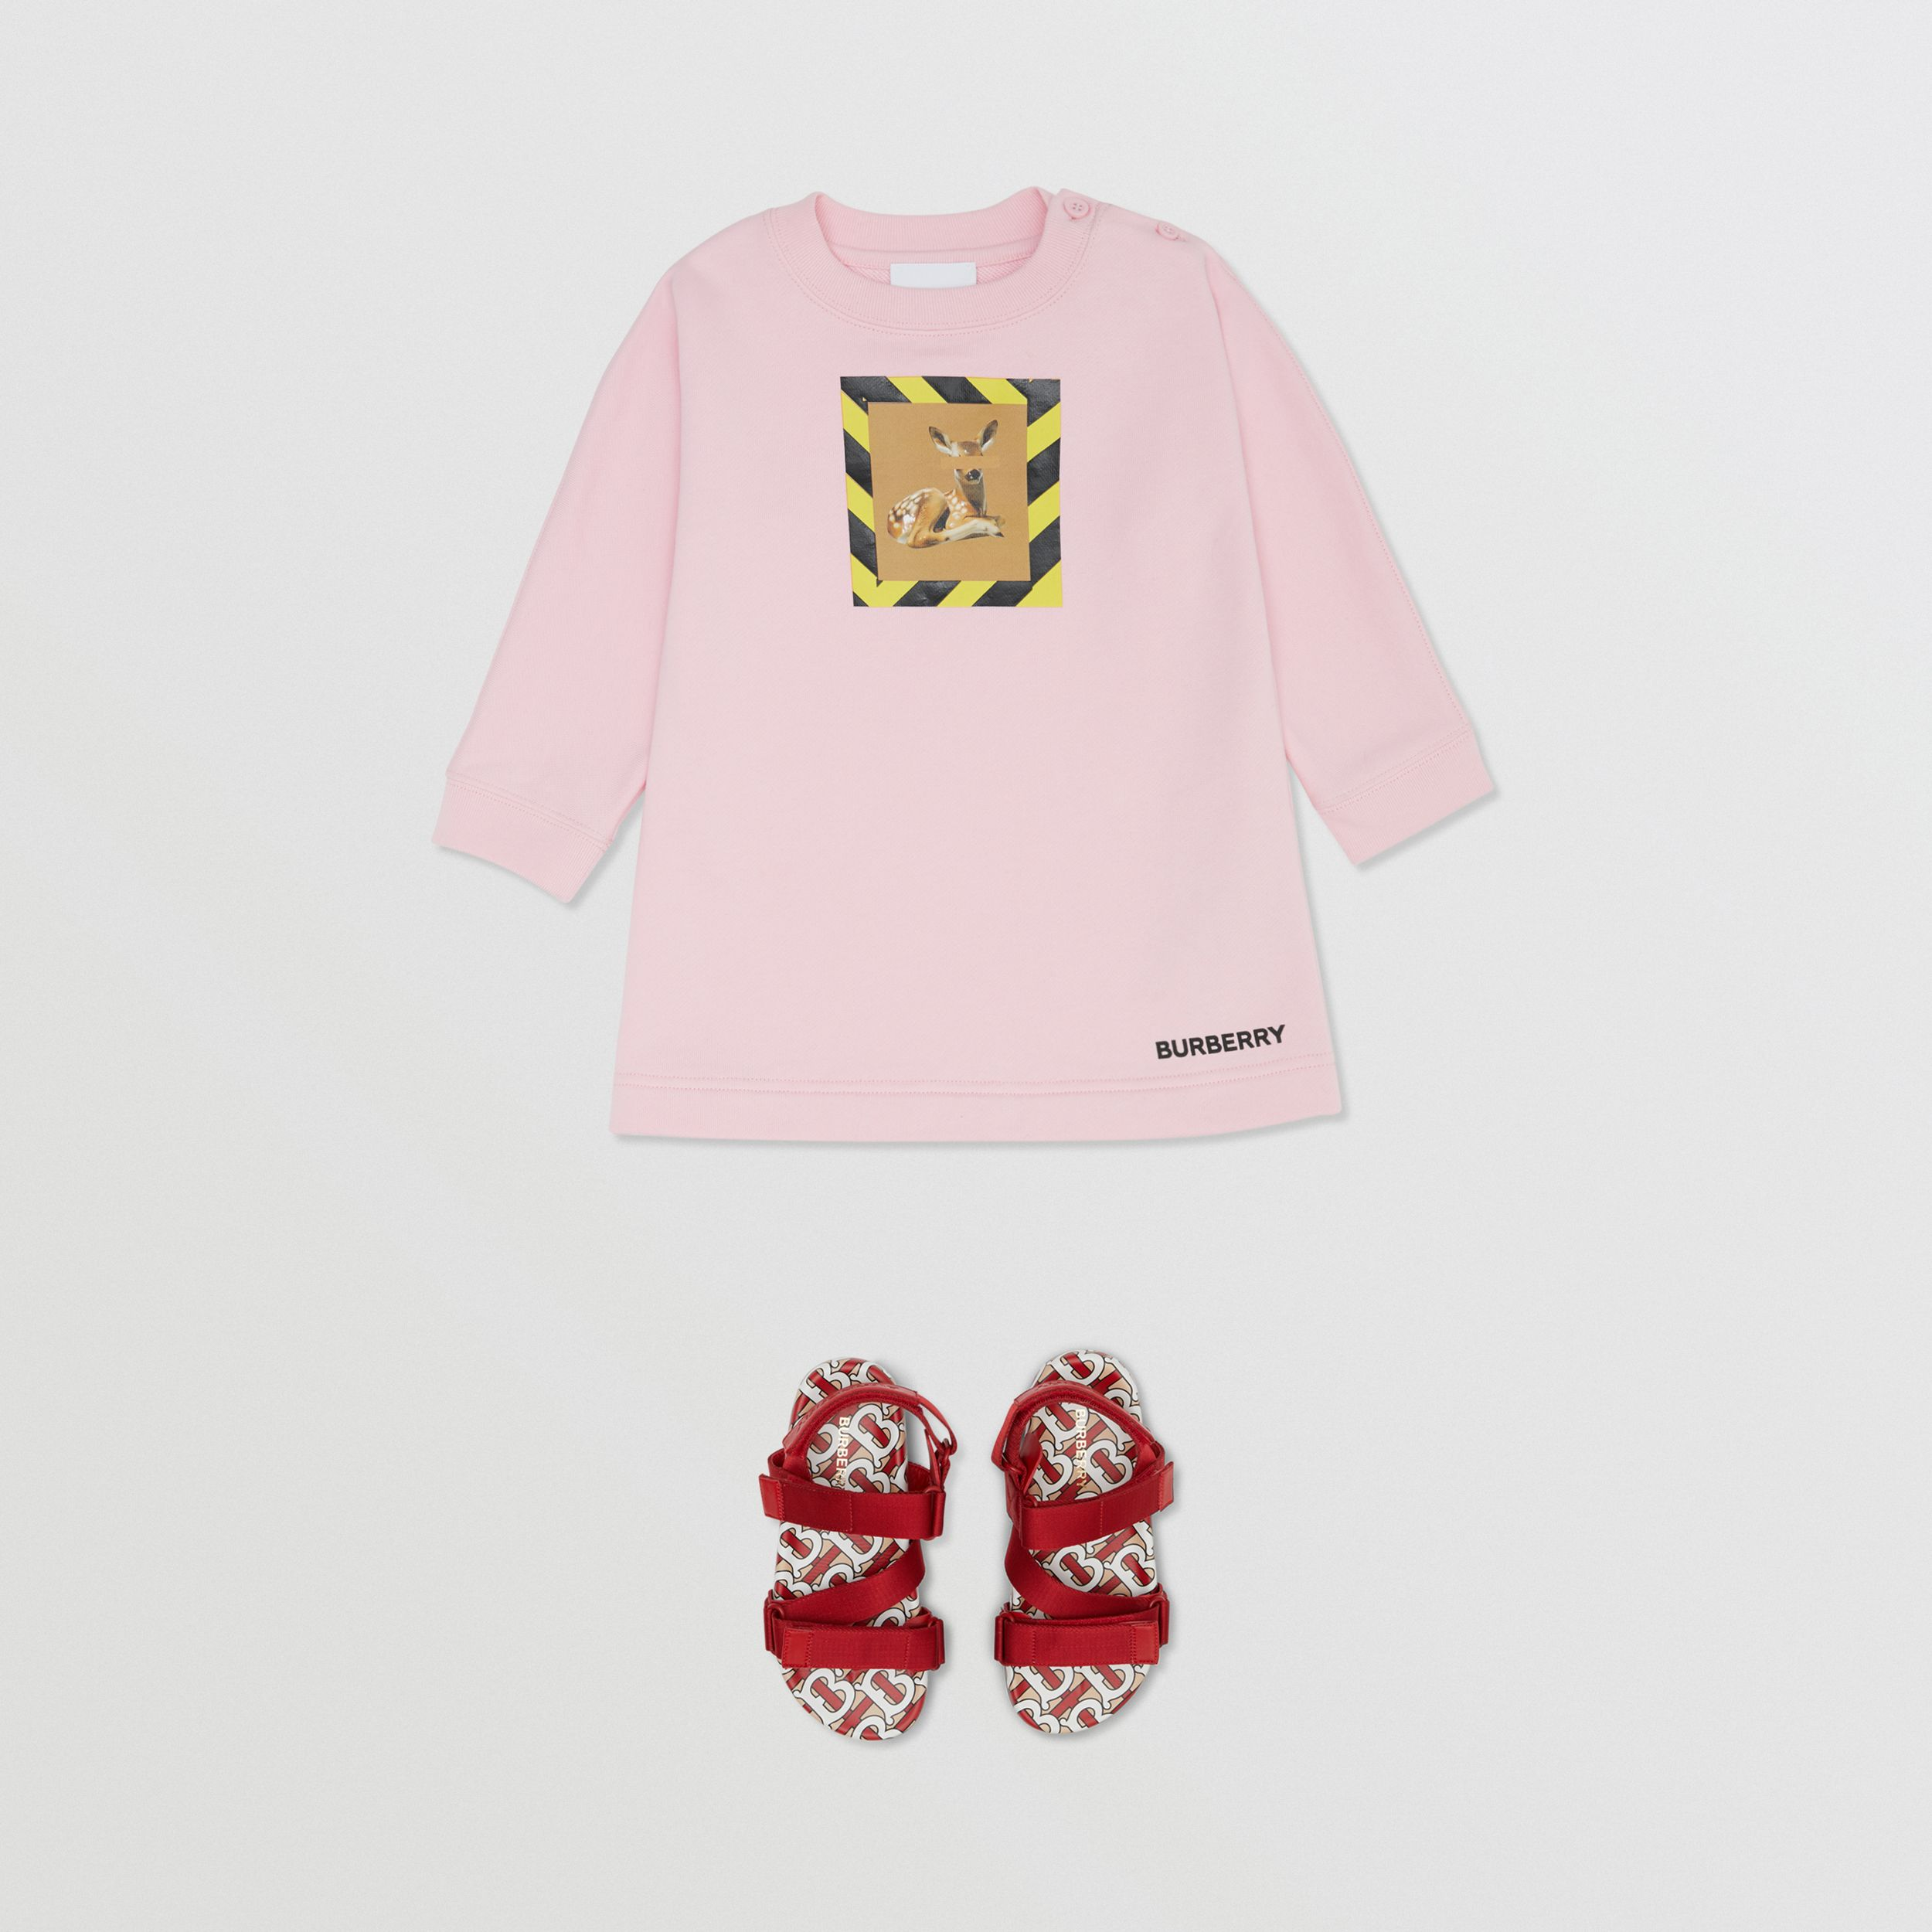 Deer Print Cotton Sweater Dress in Candy Pink - Children | Burberry - 3